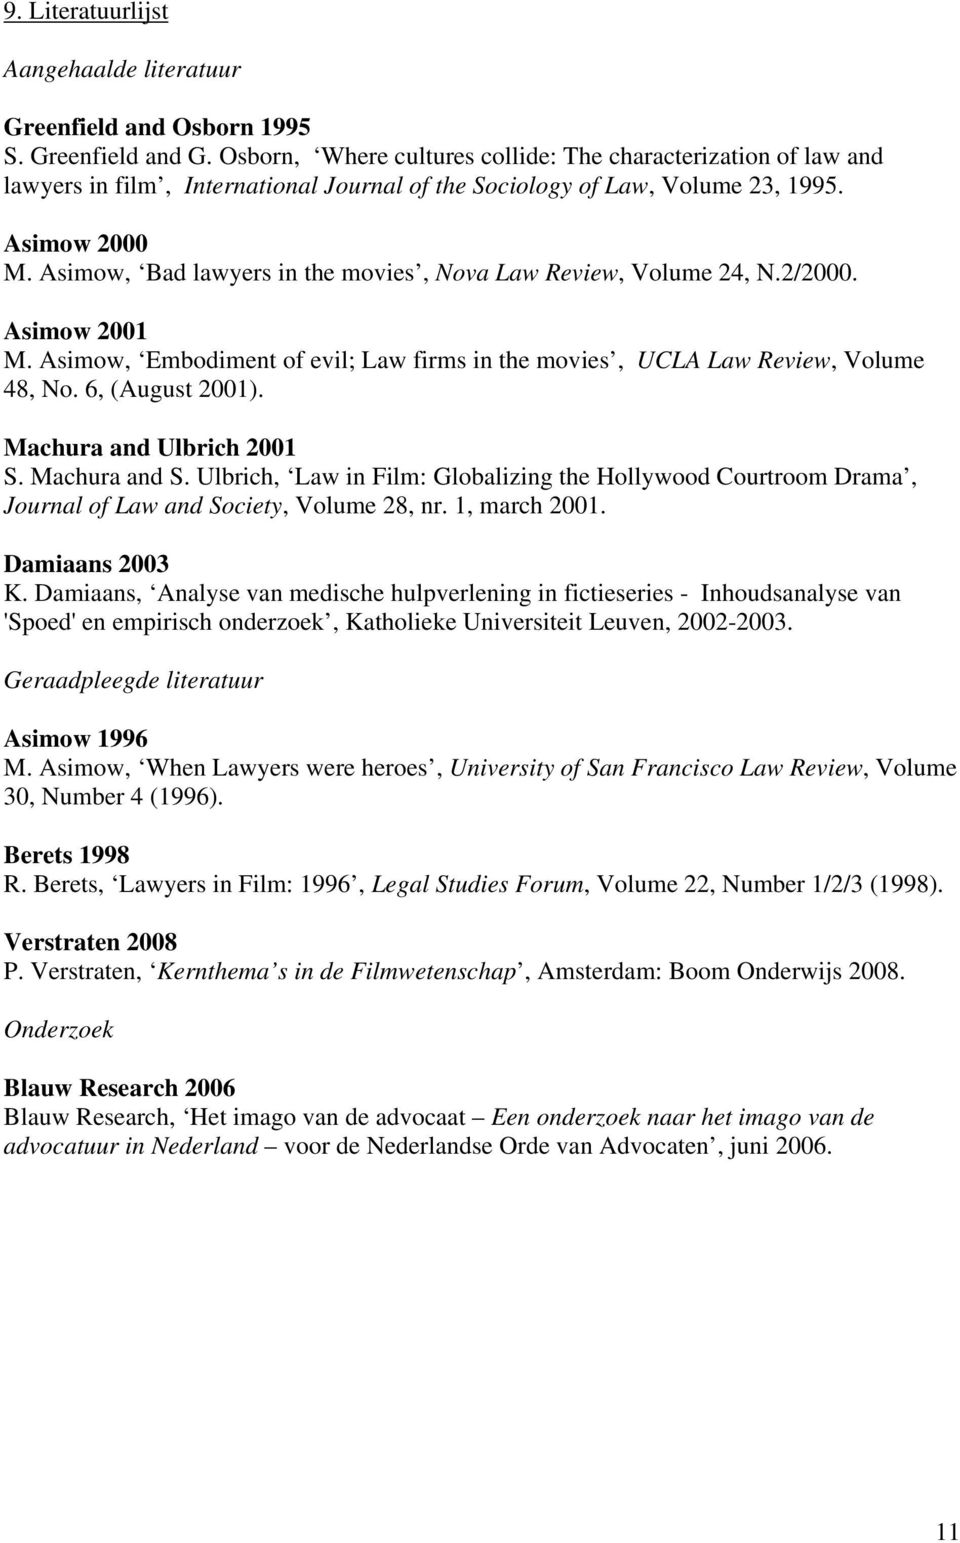 Asimow, Bad lawyers in the movies, Nova Law Review, Volume 24, N.2/2000. Asimow 2001 M. Asimow, Embodiment of evil; Law firms in the movies, UCLA Law Review, Volume 48, No. 6, (August 2001).